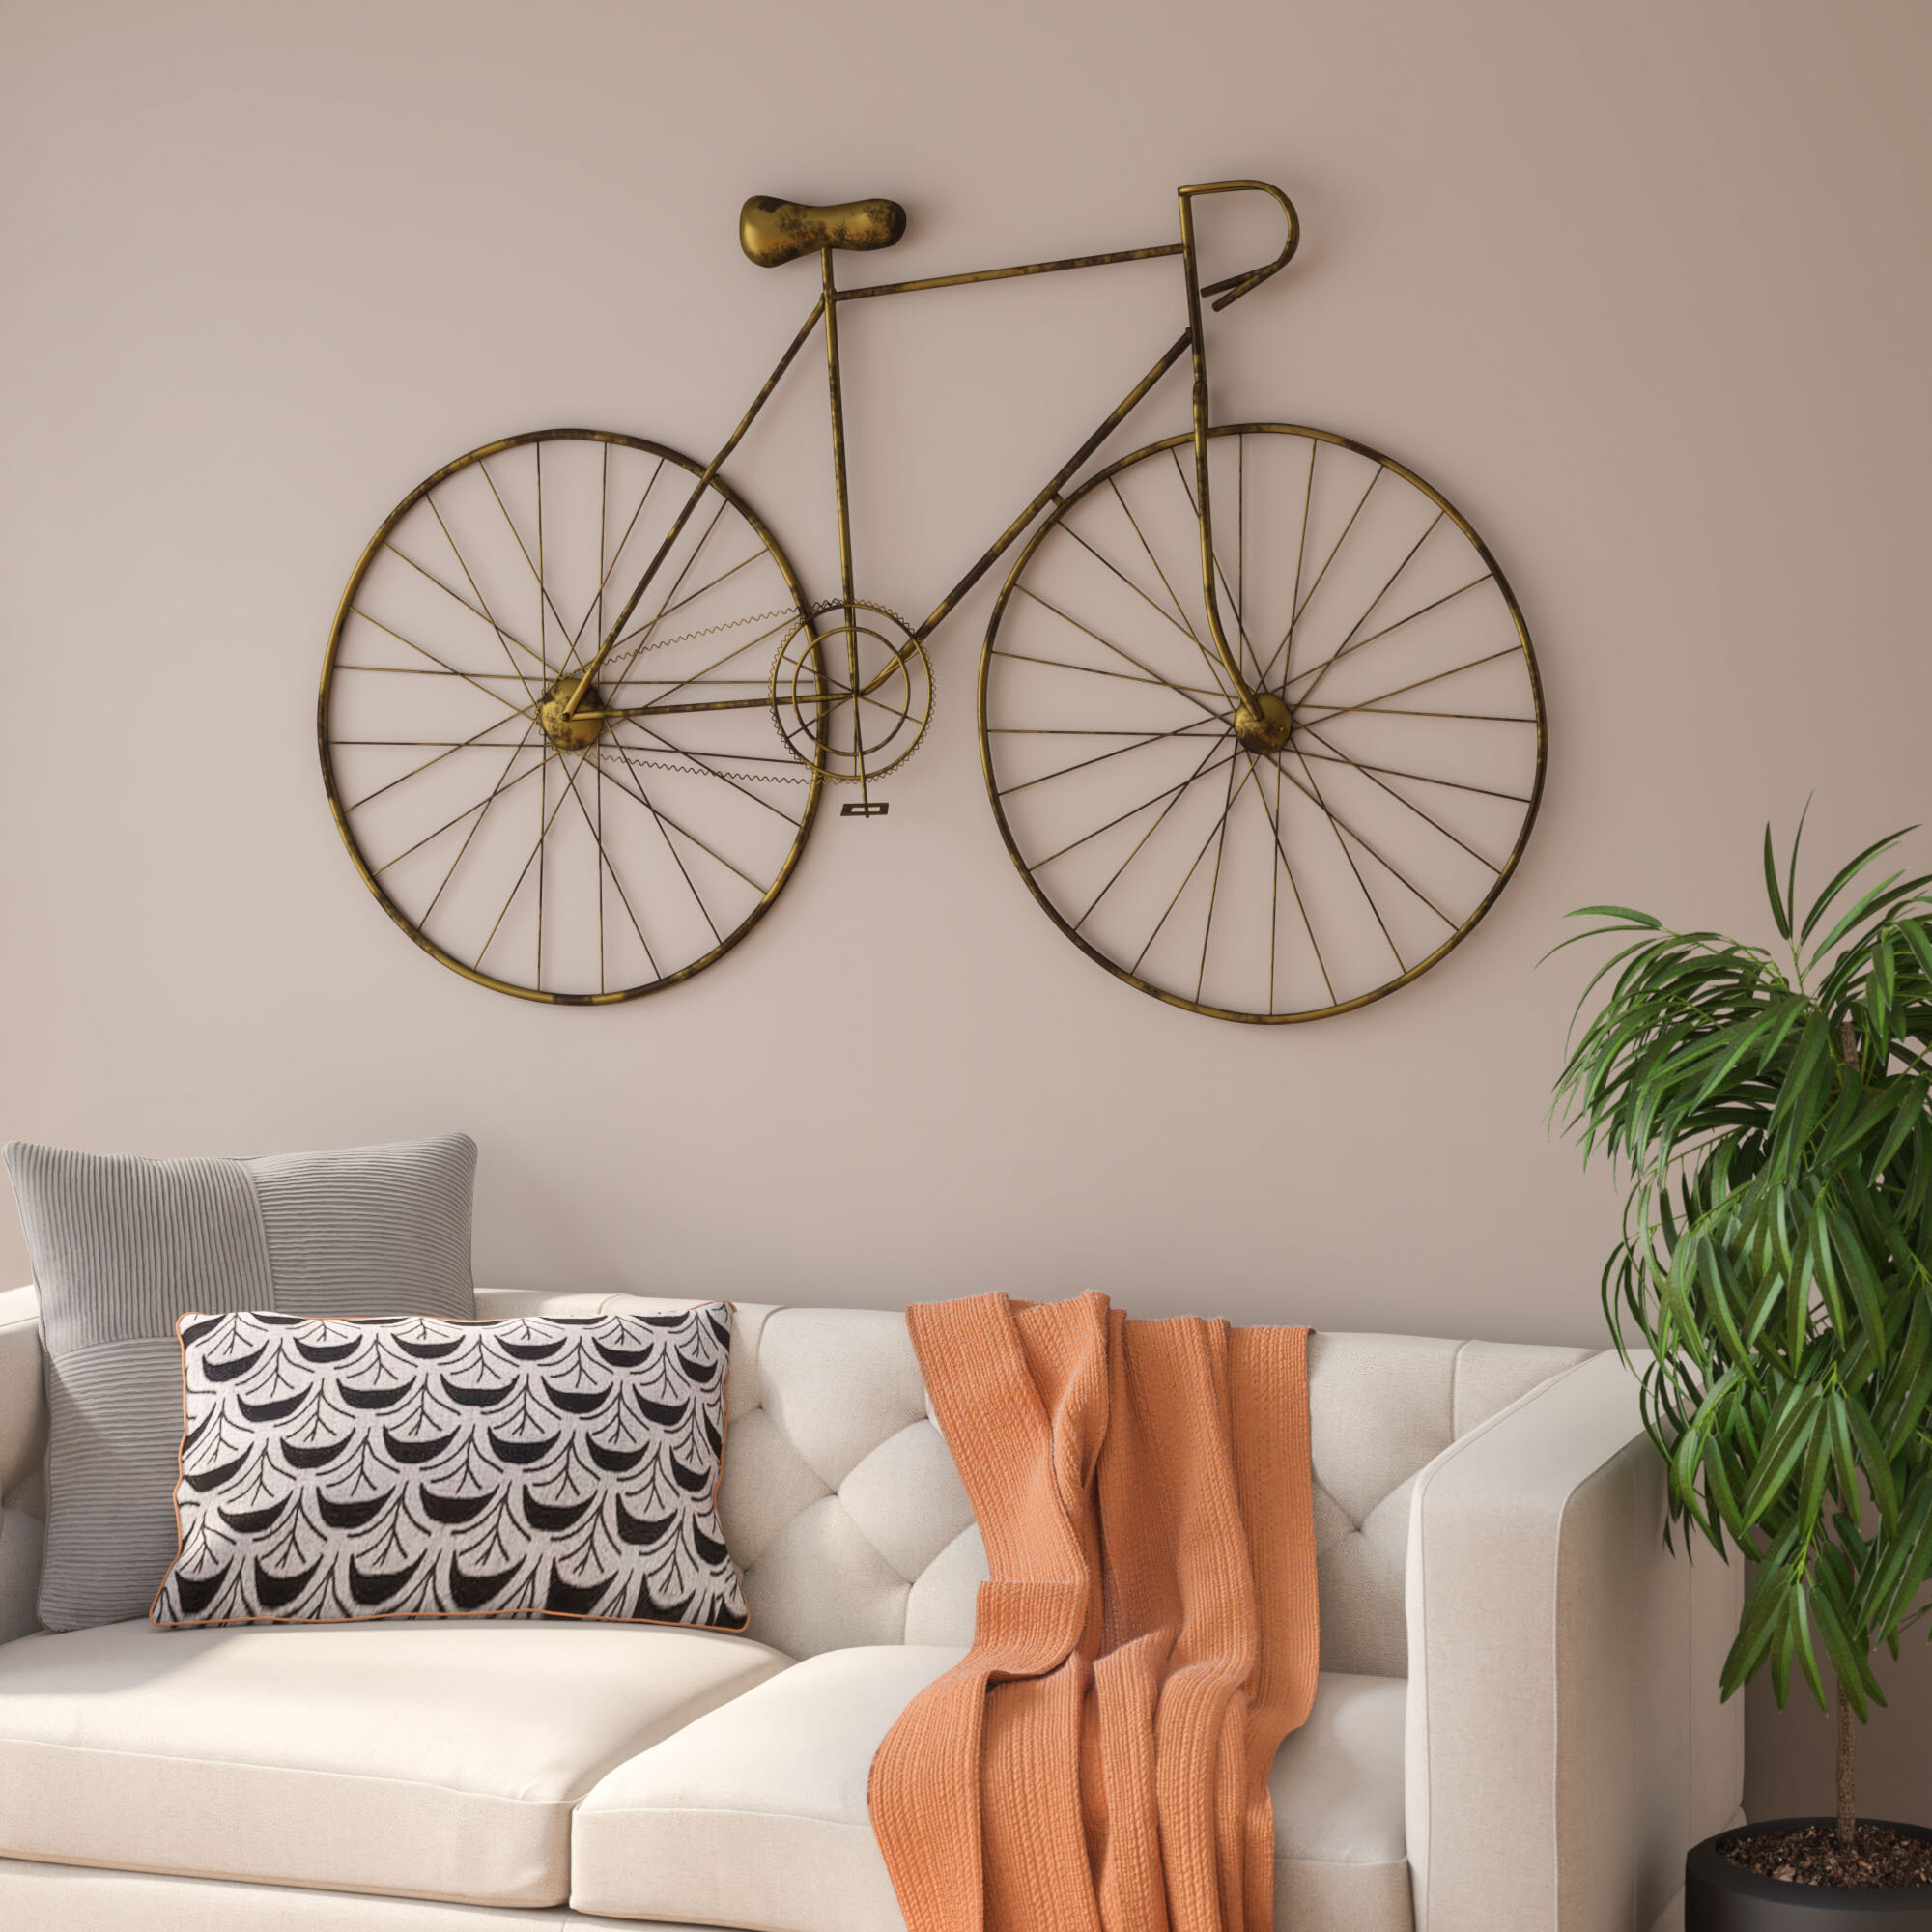 Wayfair Pertaining To Most Recent Bike Wall Decor (View 18 of 20)